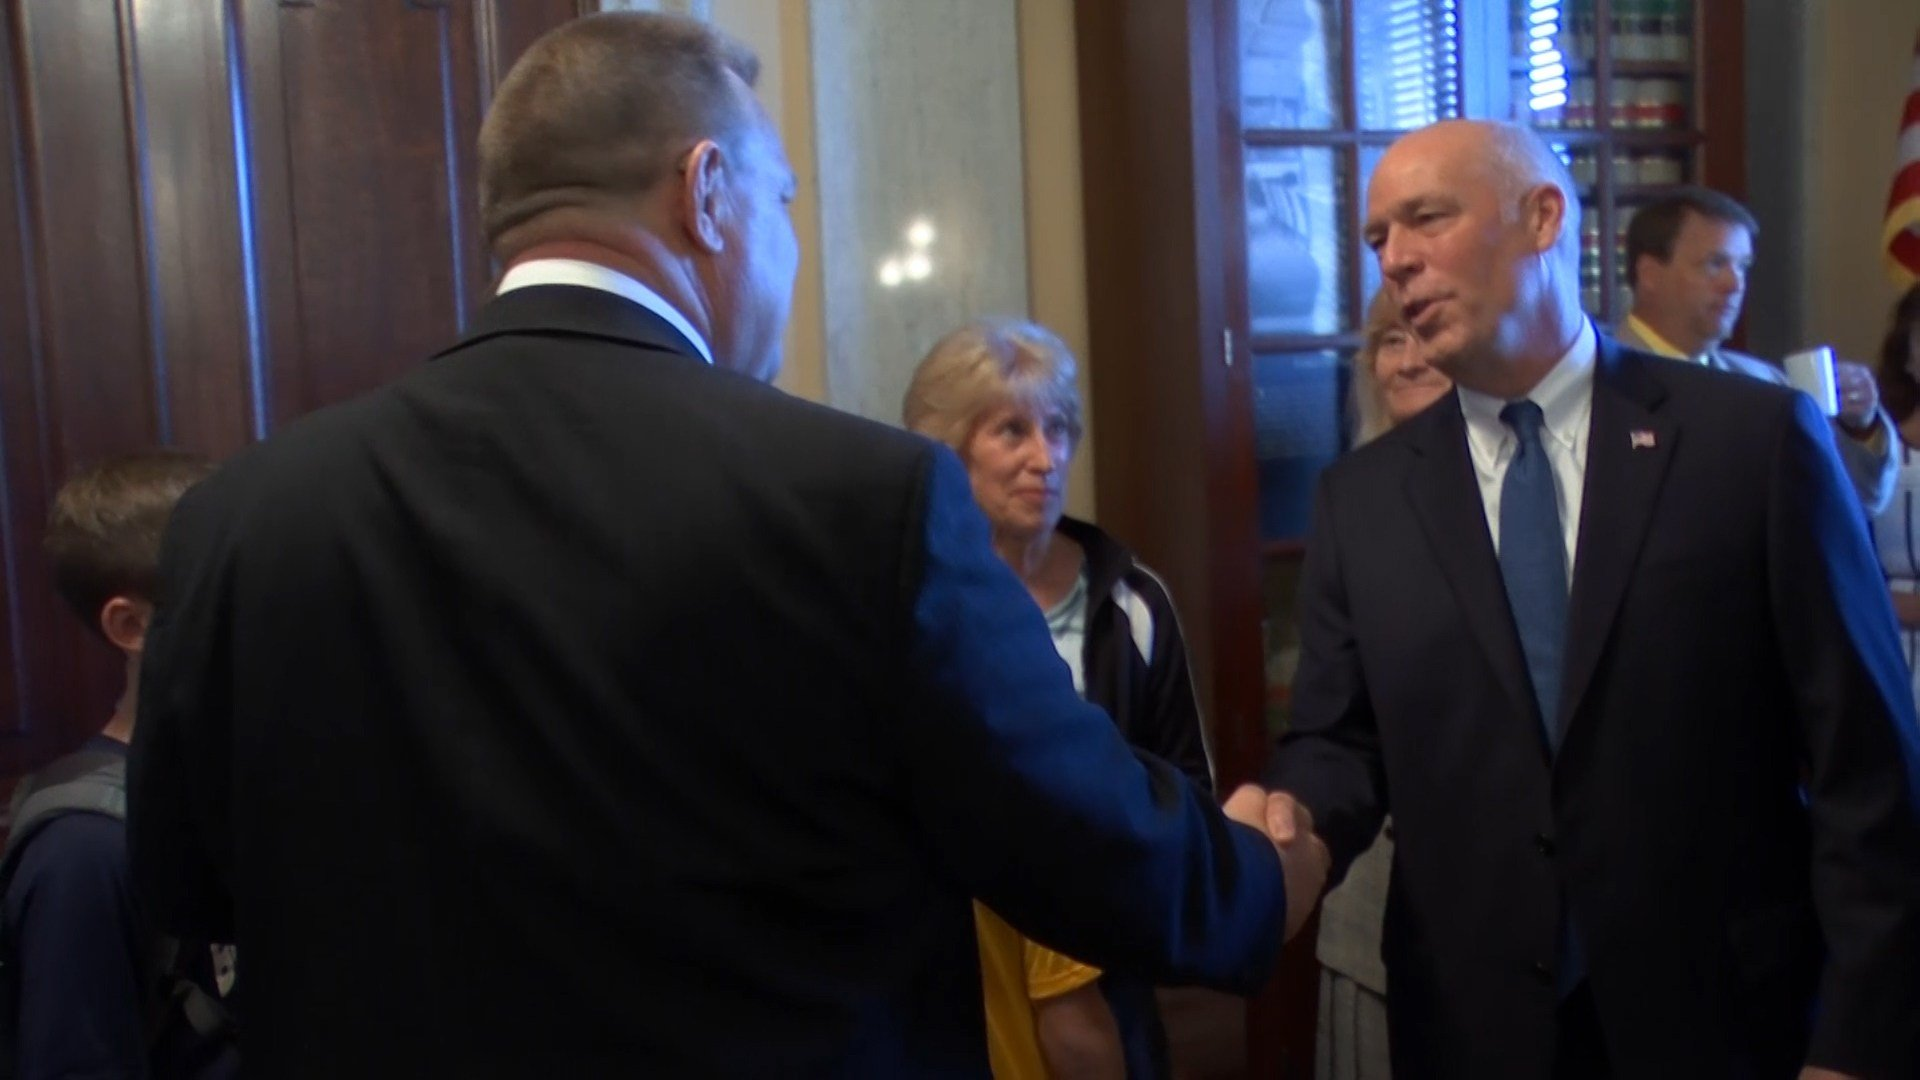 U.S. Rep. Greg Gianforte (right) shakes hands with U.S. Sen. Jon Tester